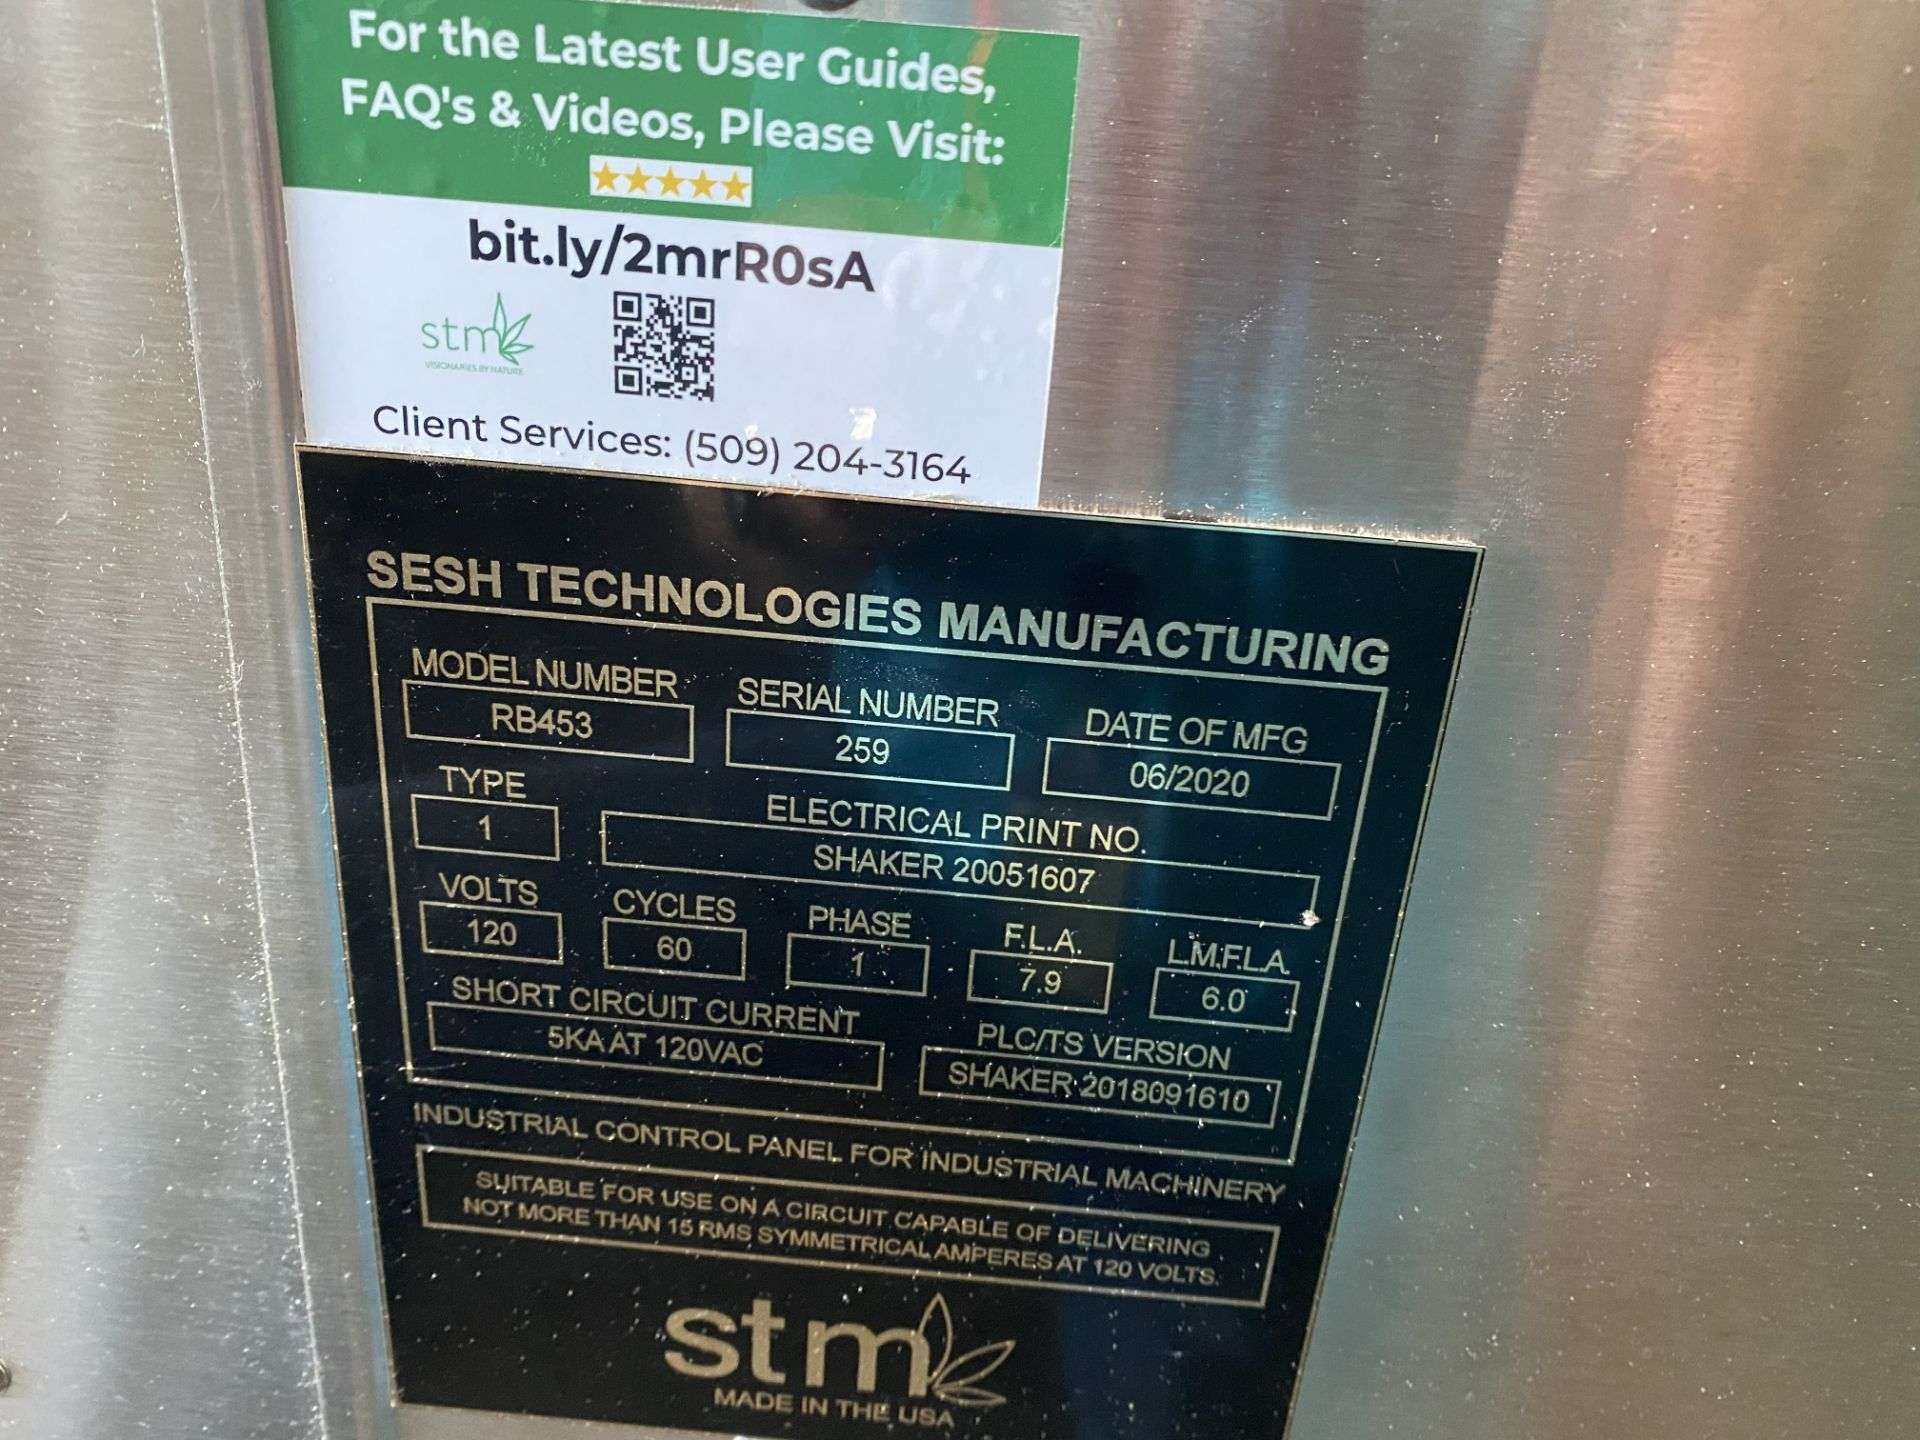 Used- STM Rocketbox 2.0 for Automated Crafting of Pre-Rolls, Model RB453. - Image 3 of 3